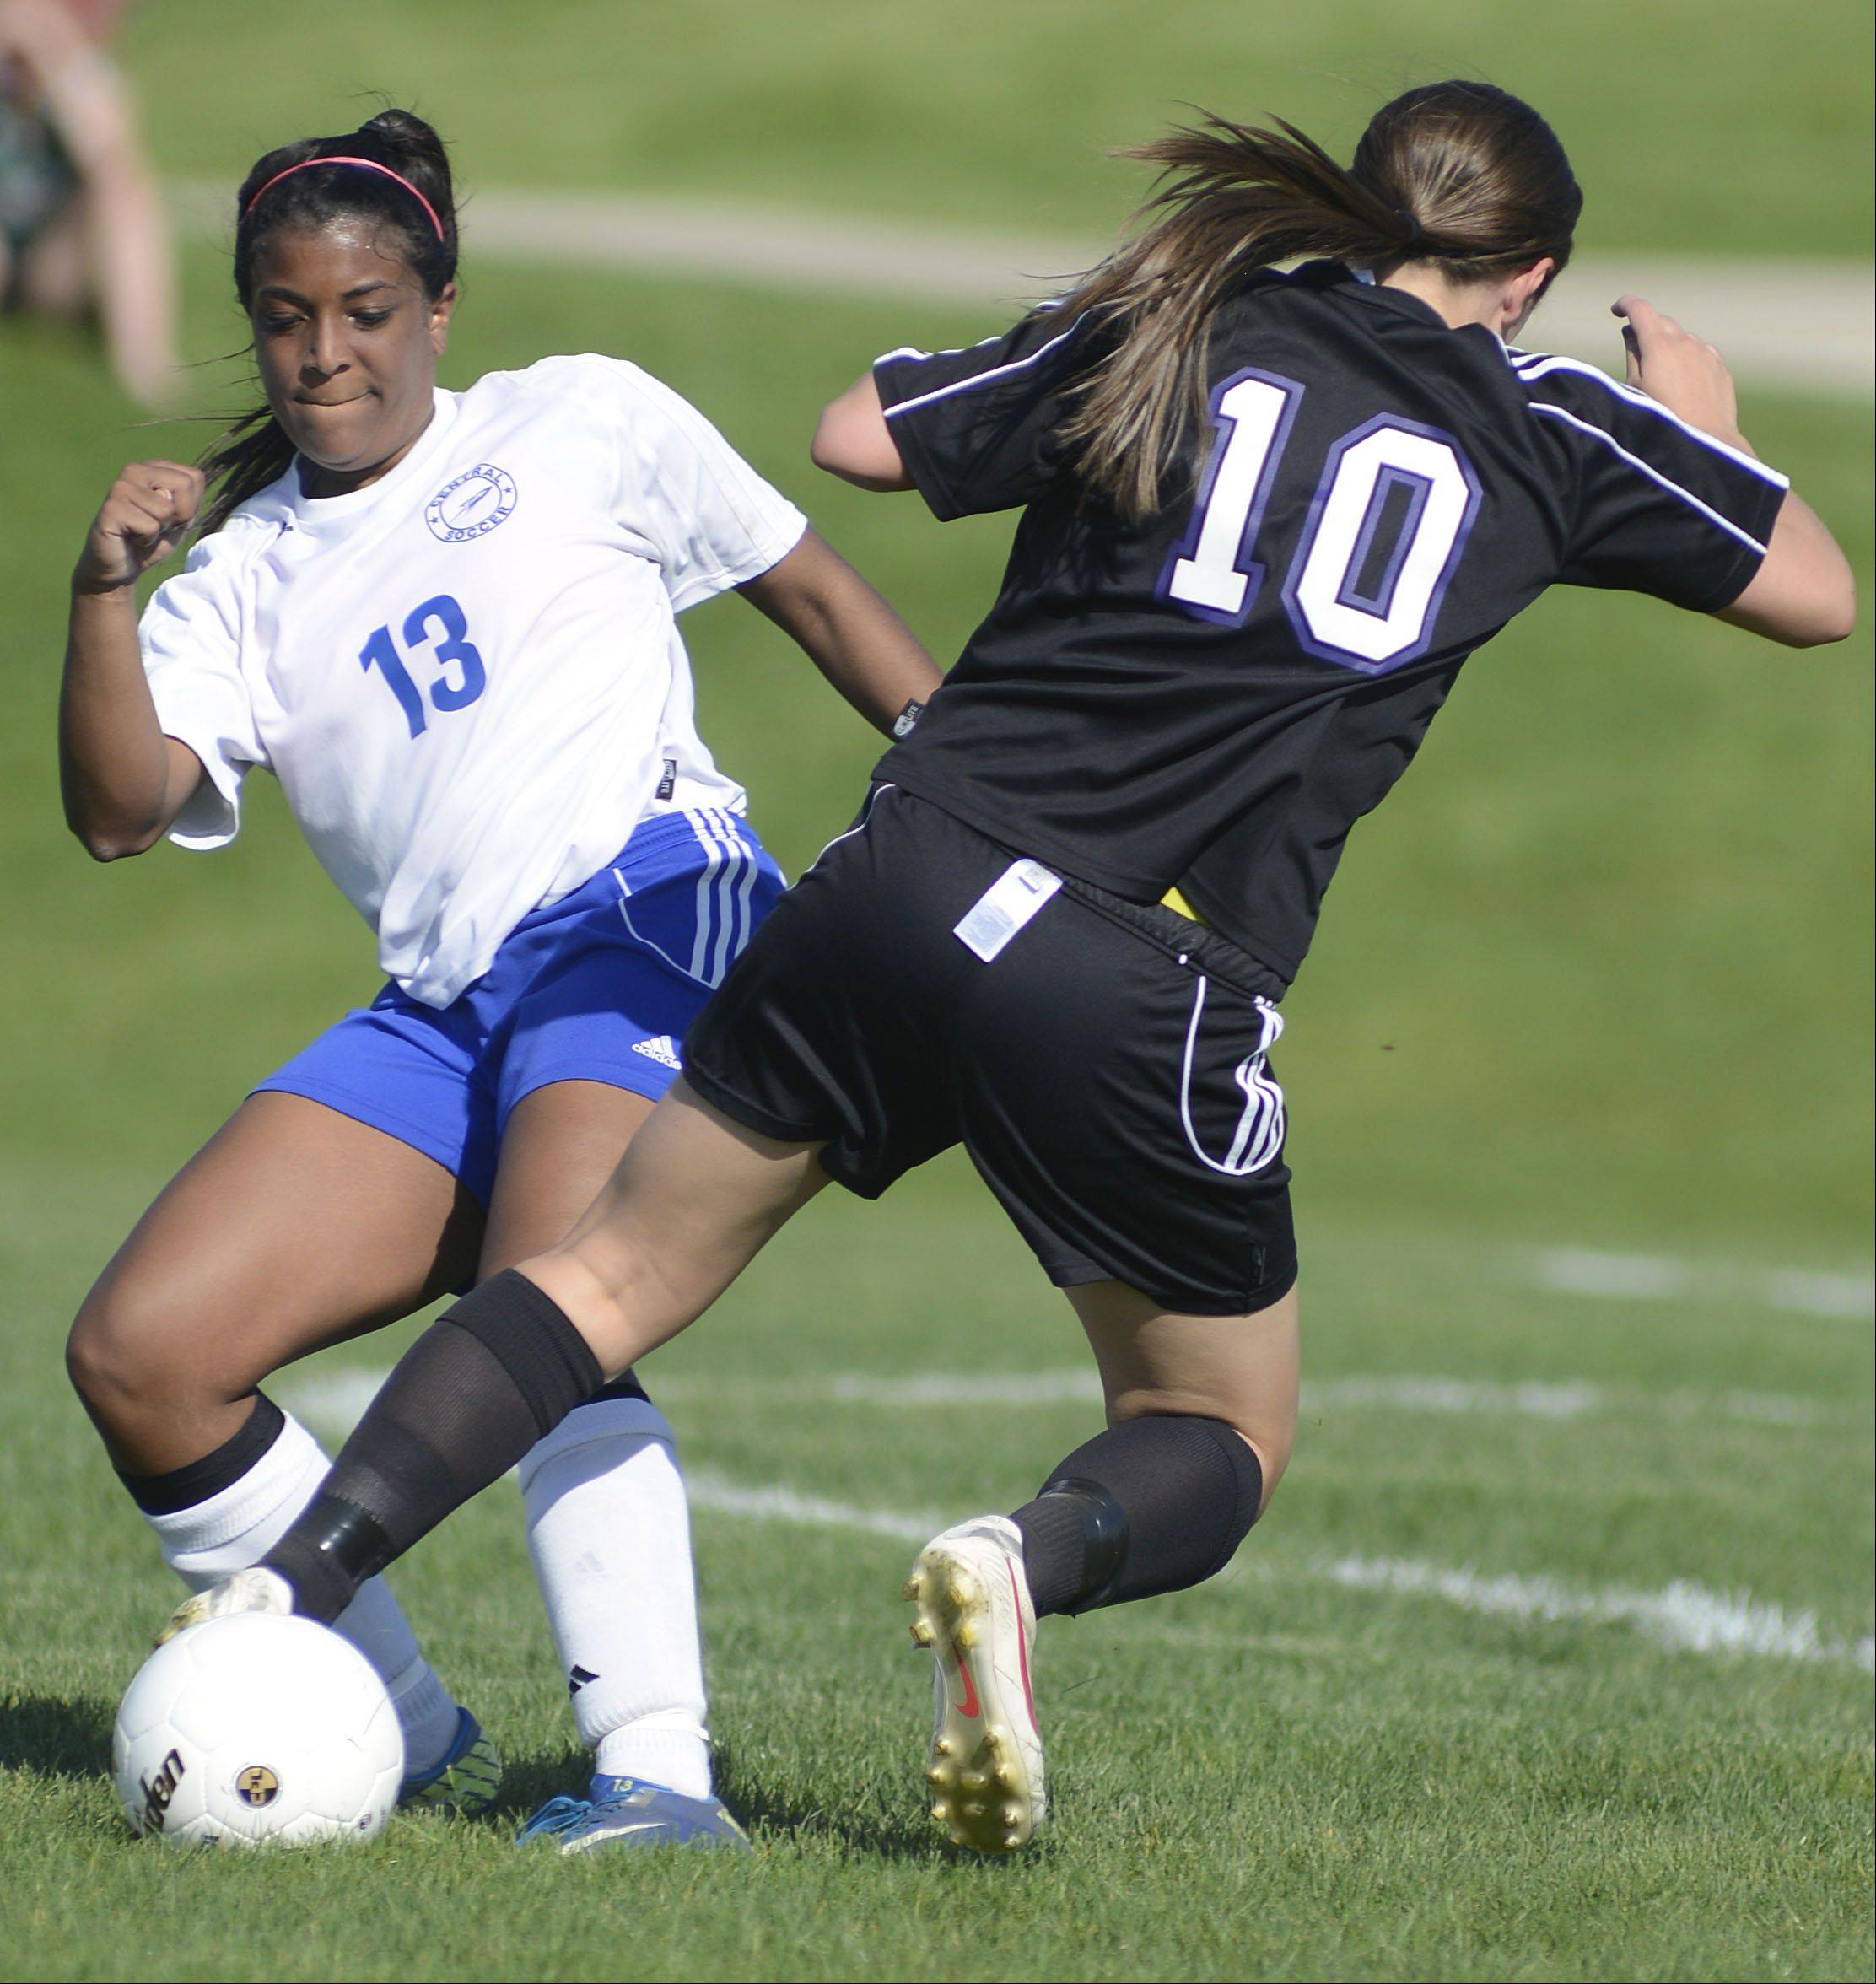 Burlington Central's Lexi Kern and Hampshire's Alex Zeller battle for the ball in the first half of the Class 2A regional semifinal on Tuesday.